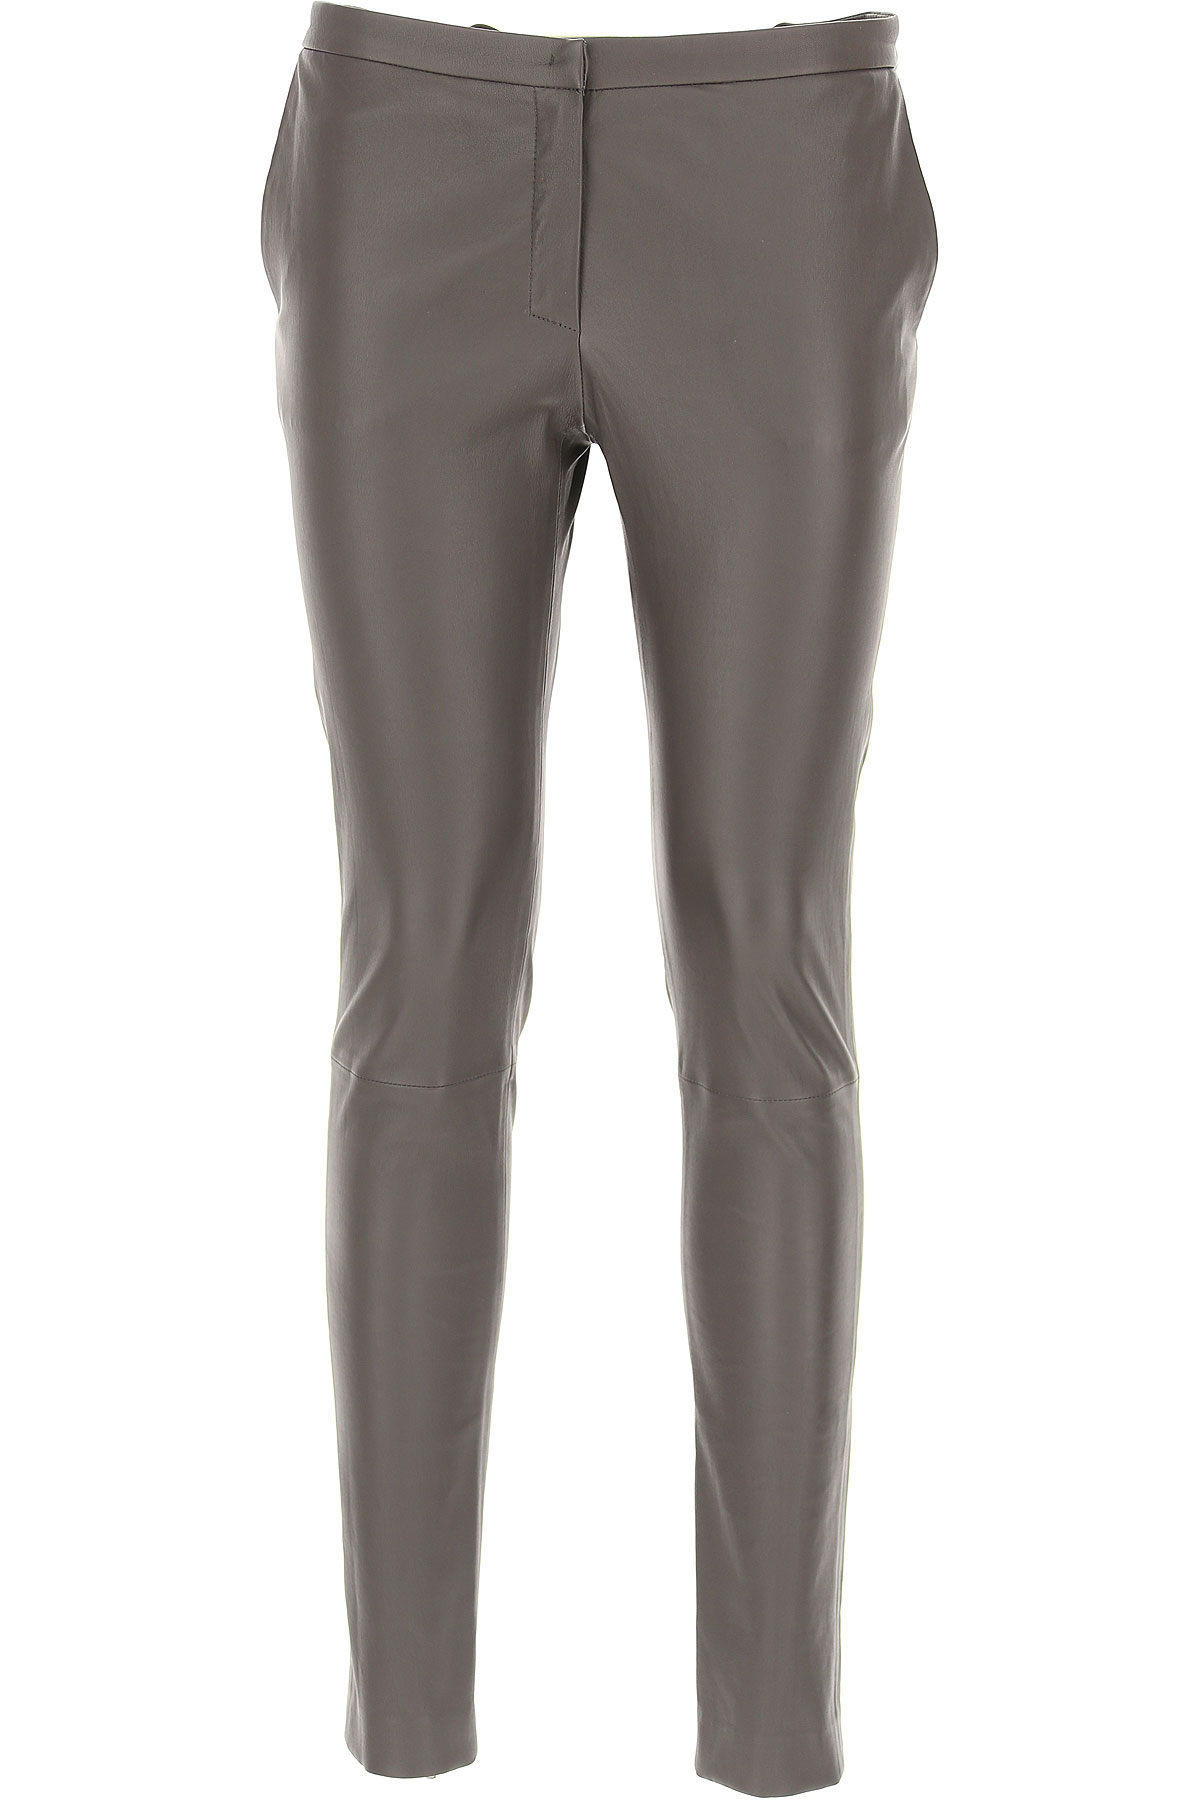 Image of Fabiana Filippi Pants for Women, Brown, Leather, 2017, 24 26 27 28 29